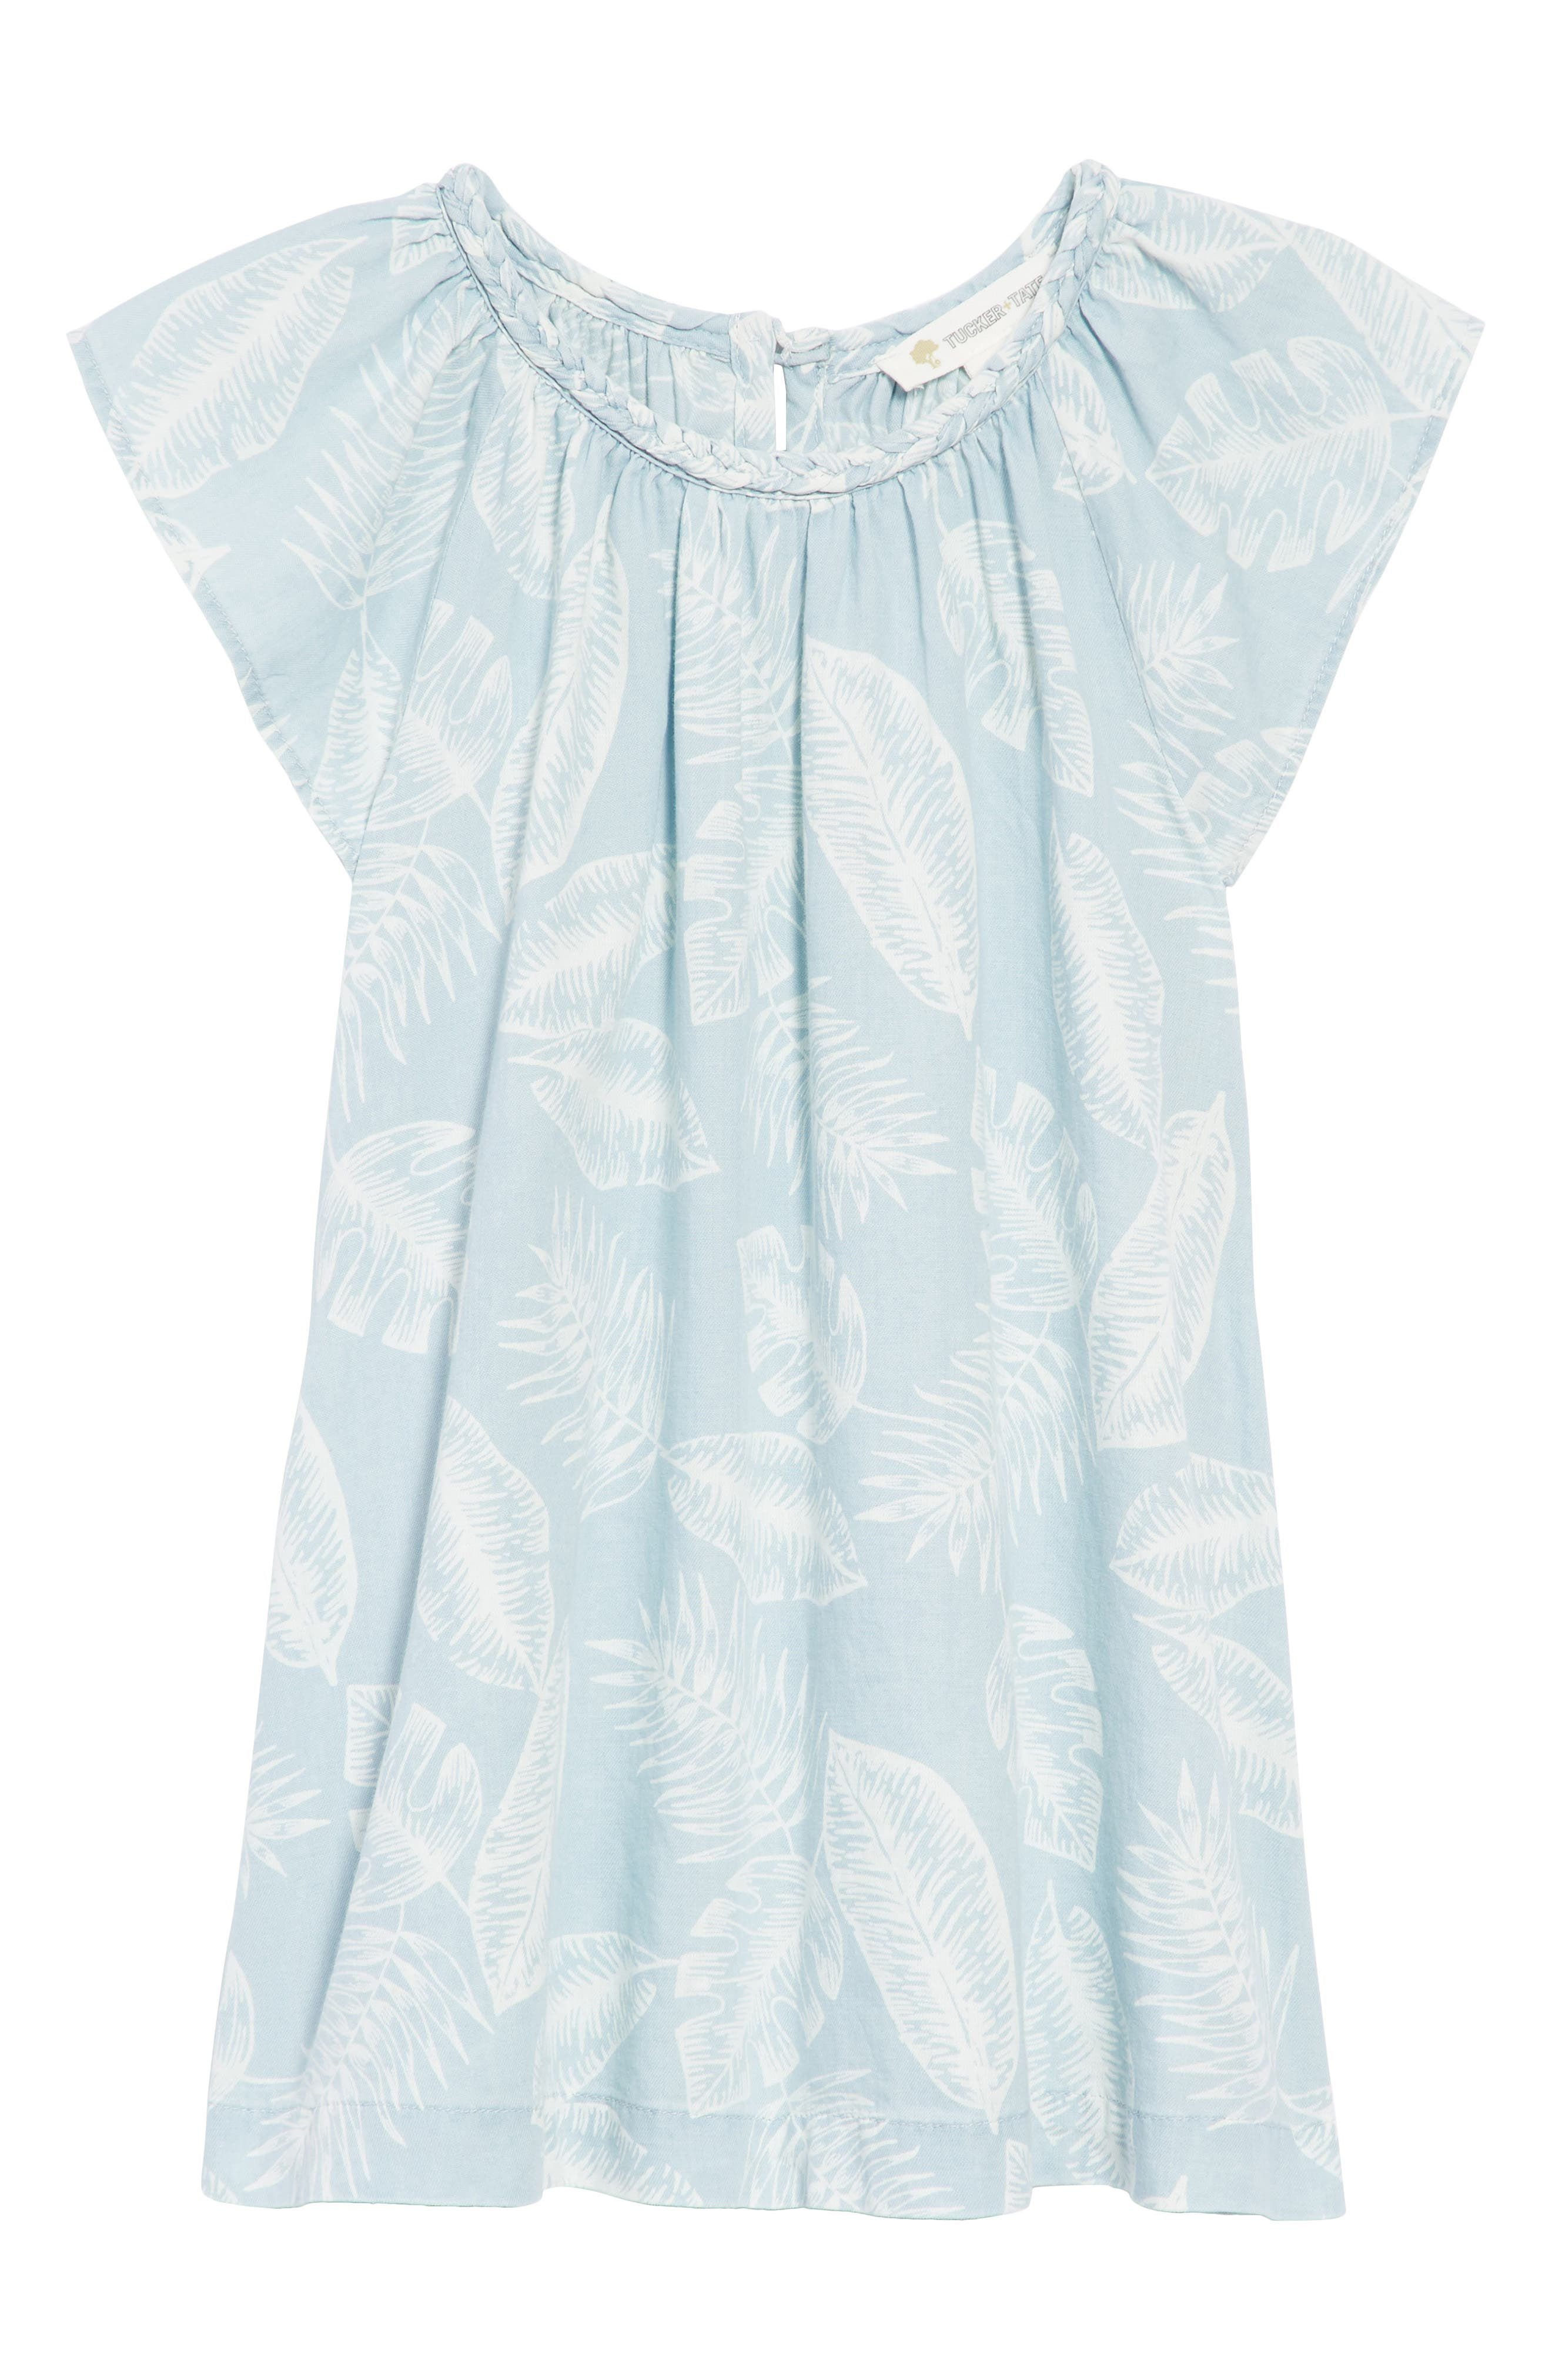 Palm Leaf Chambray Dress,                             Main thumbnail 1, color,                             Blue Thread Large Palms